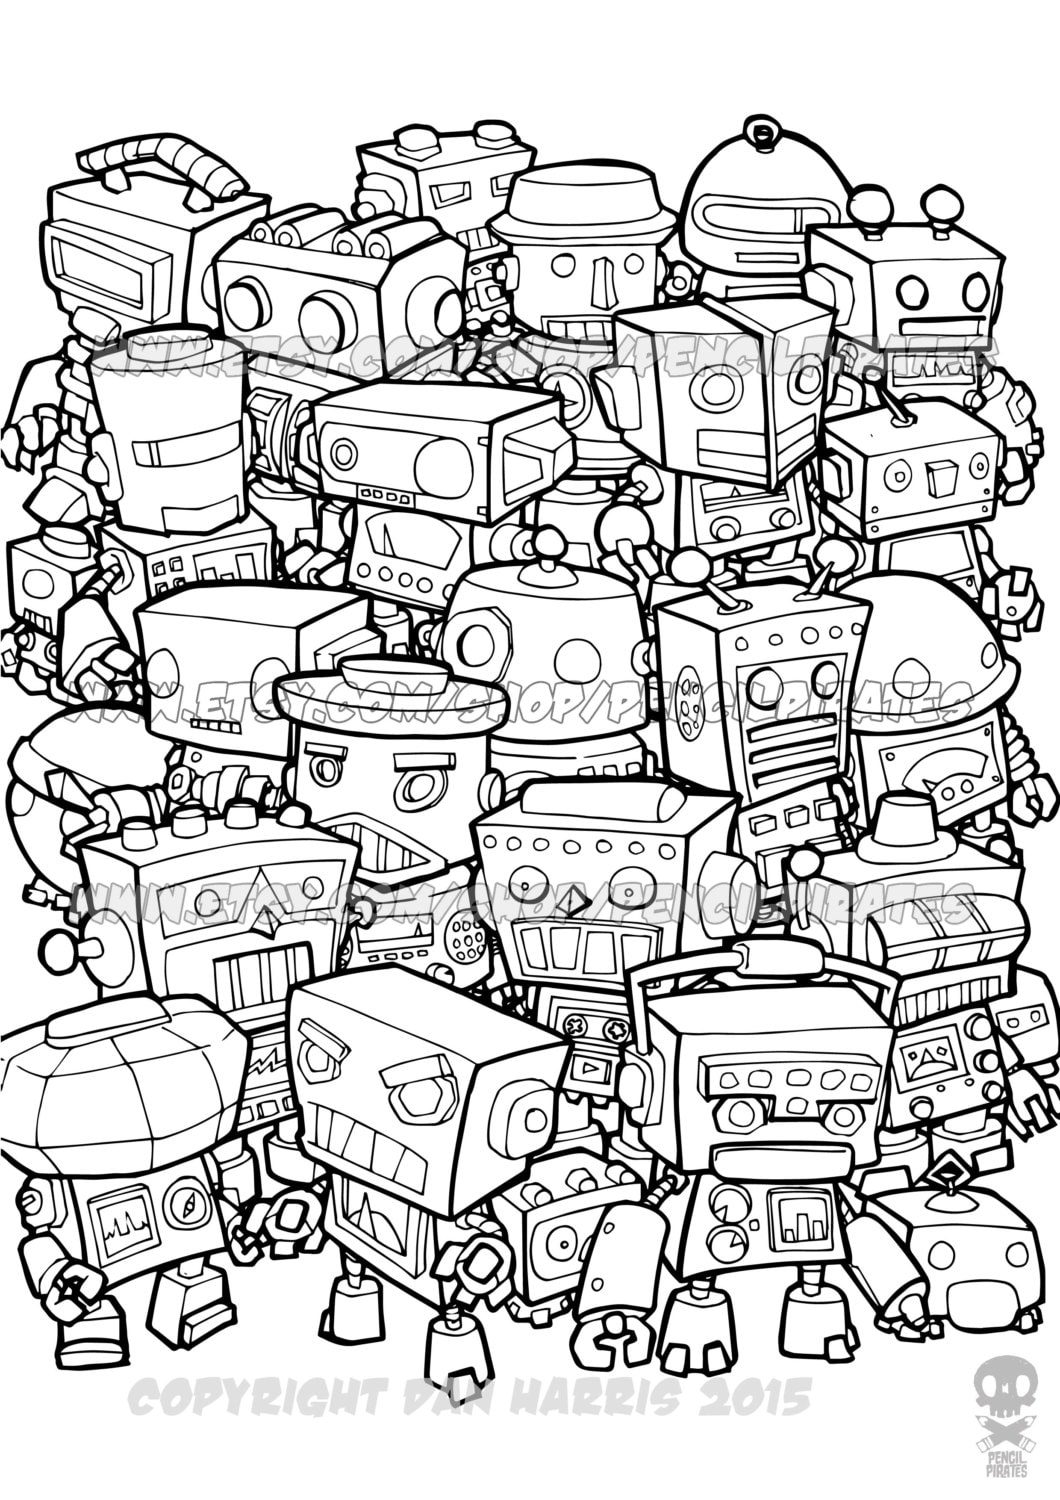 Retro robot colouring page adult colouring book page one Colouring books for adults uk